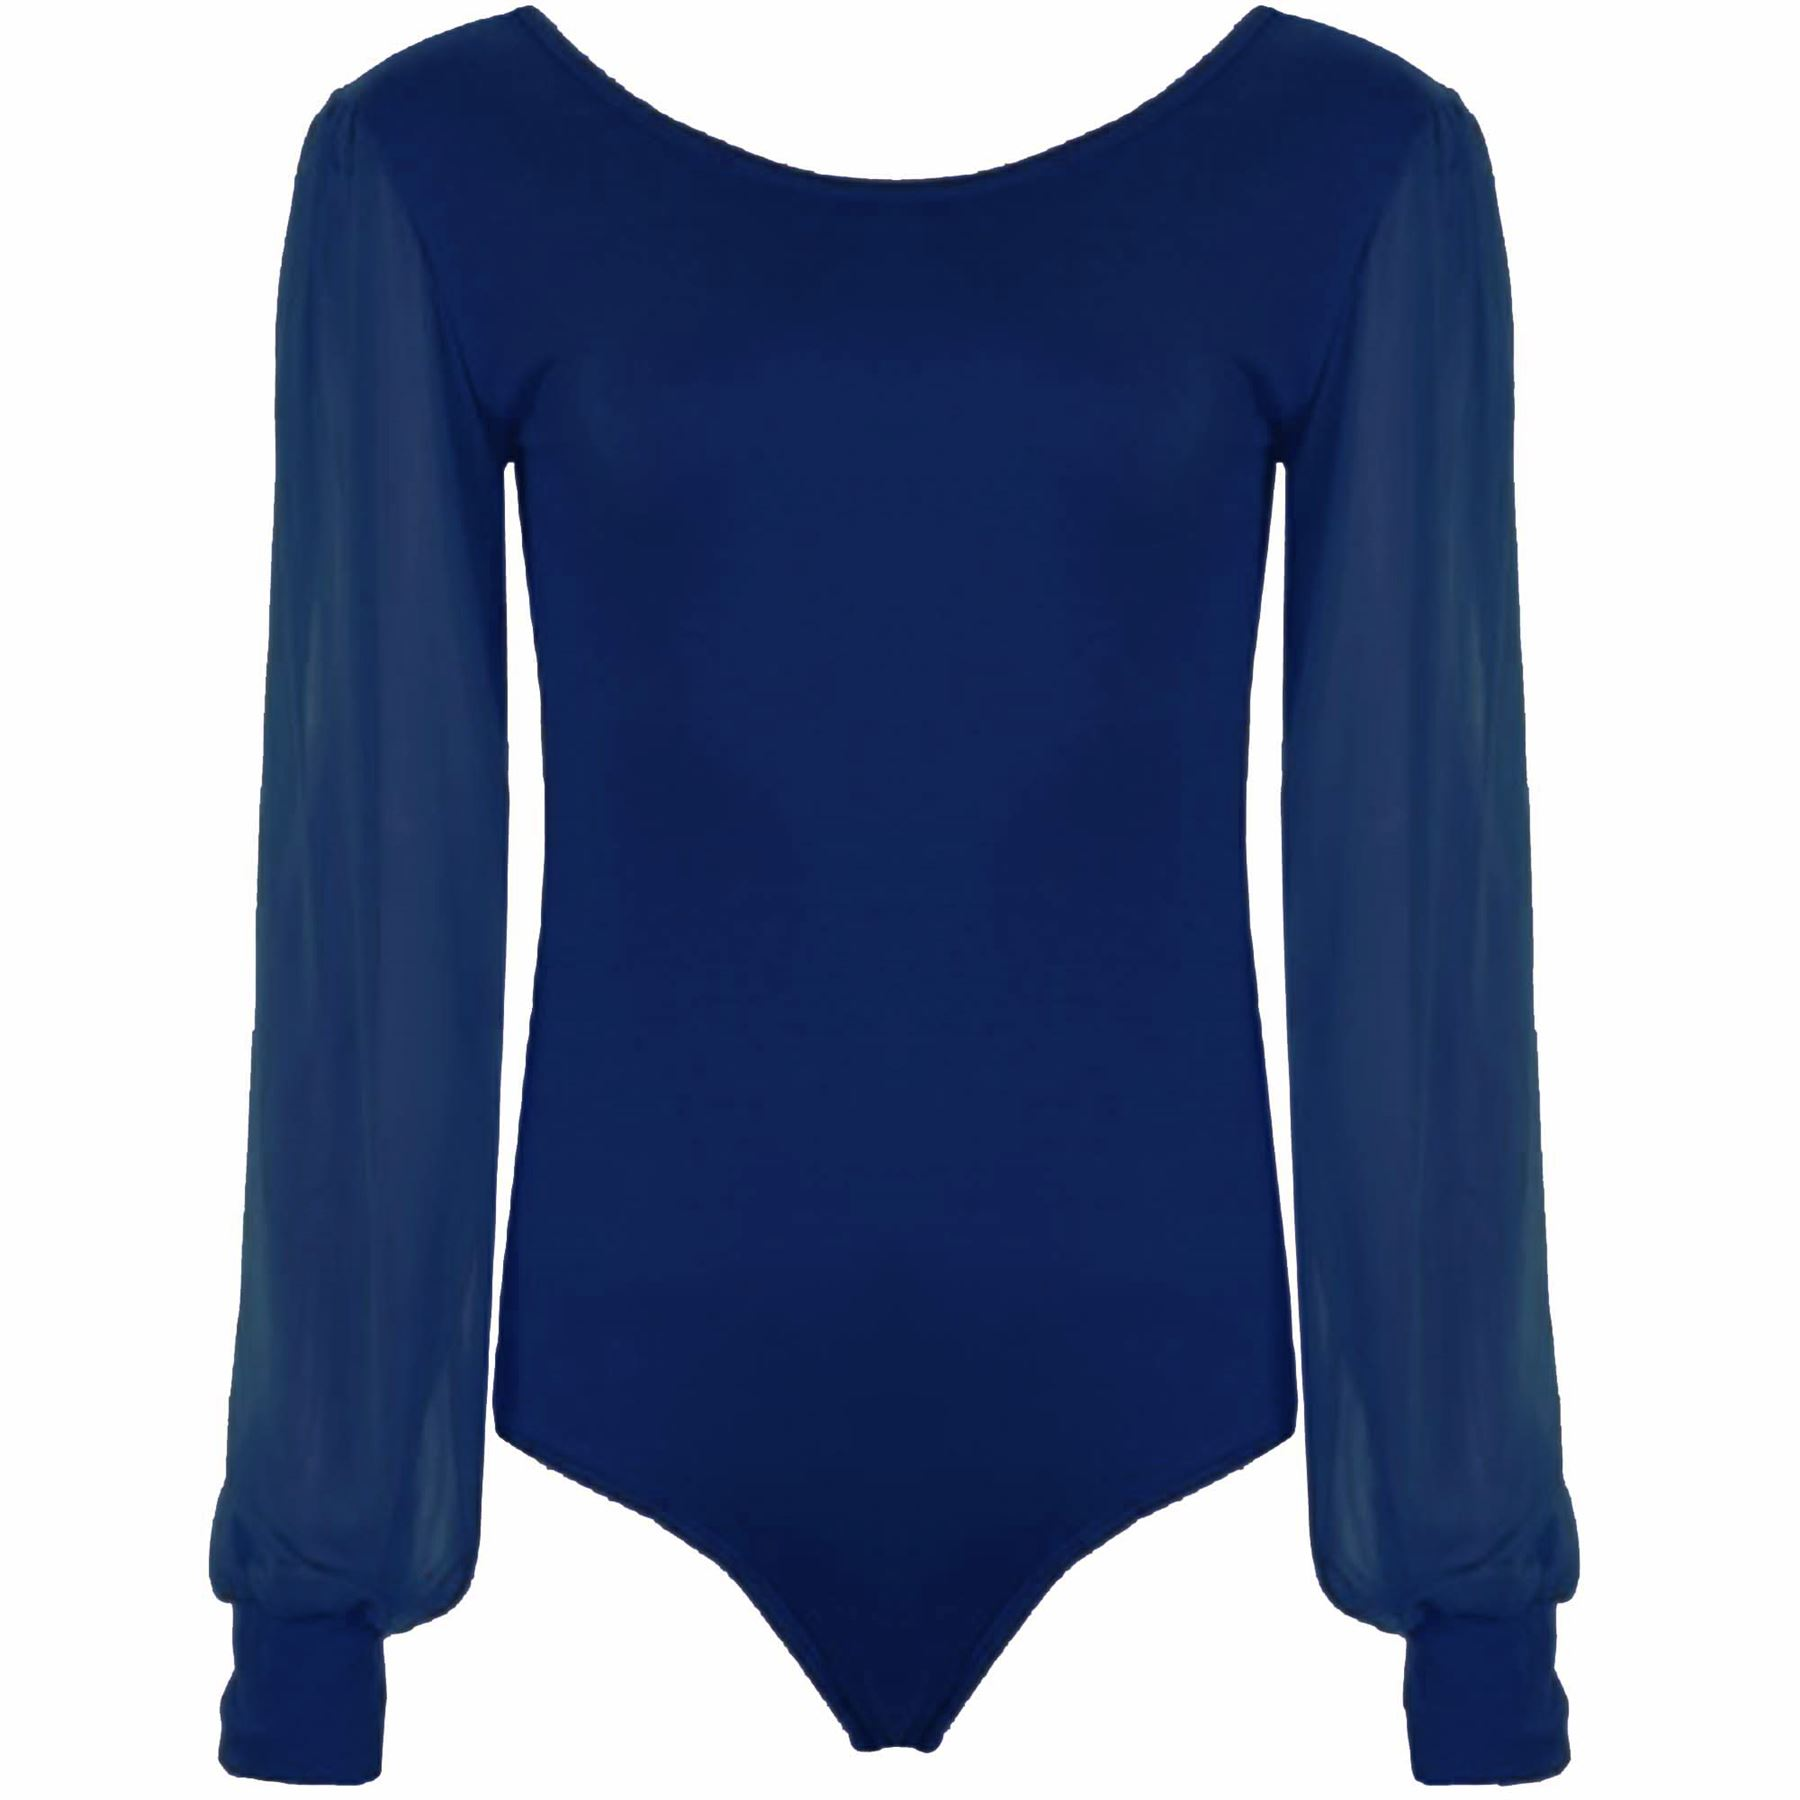 womens-Bodysuit-Chiffon-Sleeve-Leotard-Scoop-Neck-Long-Ladies-Sleeve-Size-8-22 thumbnail 4